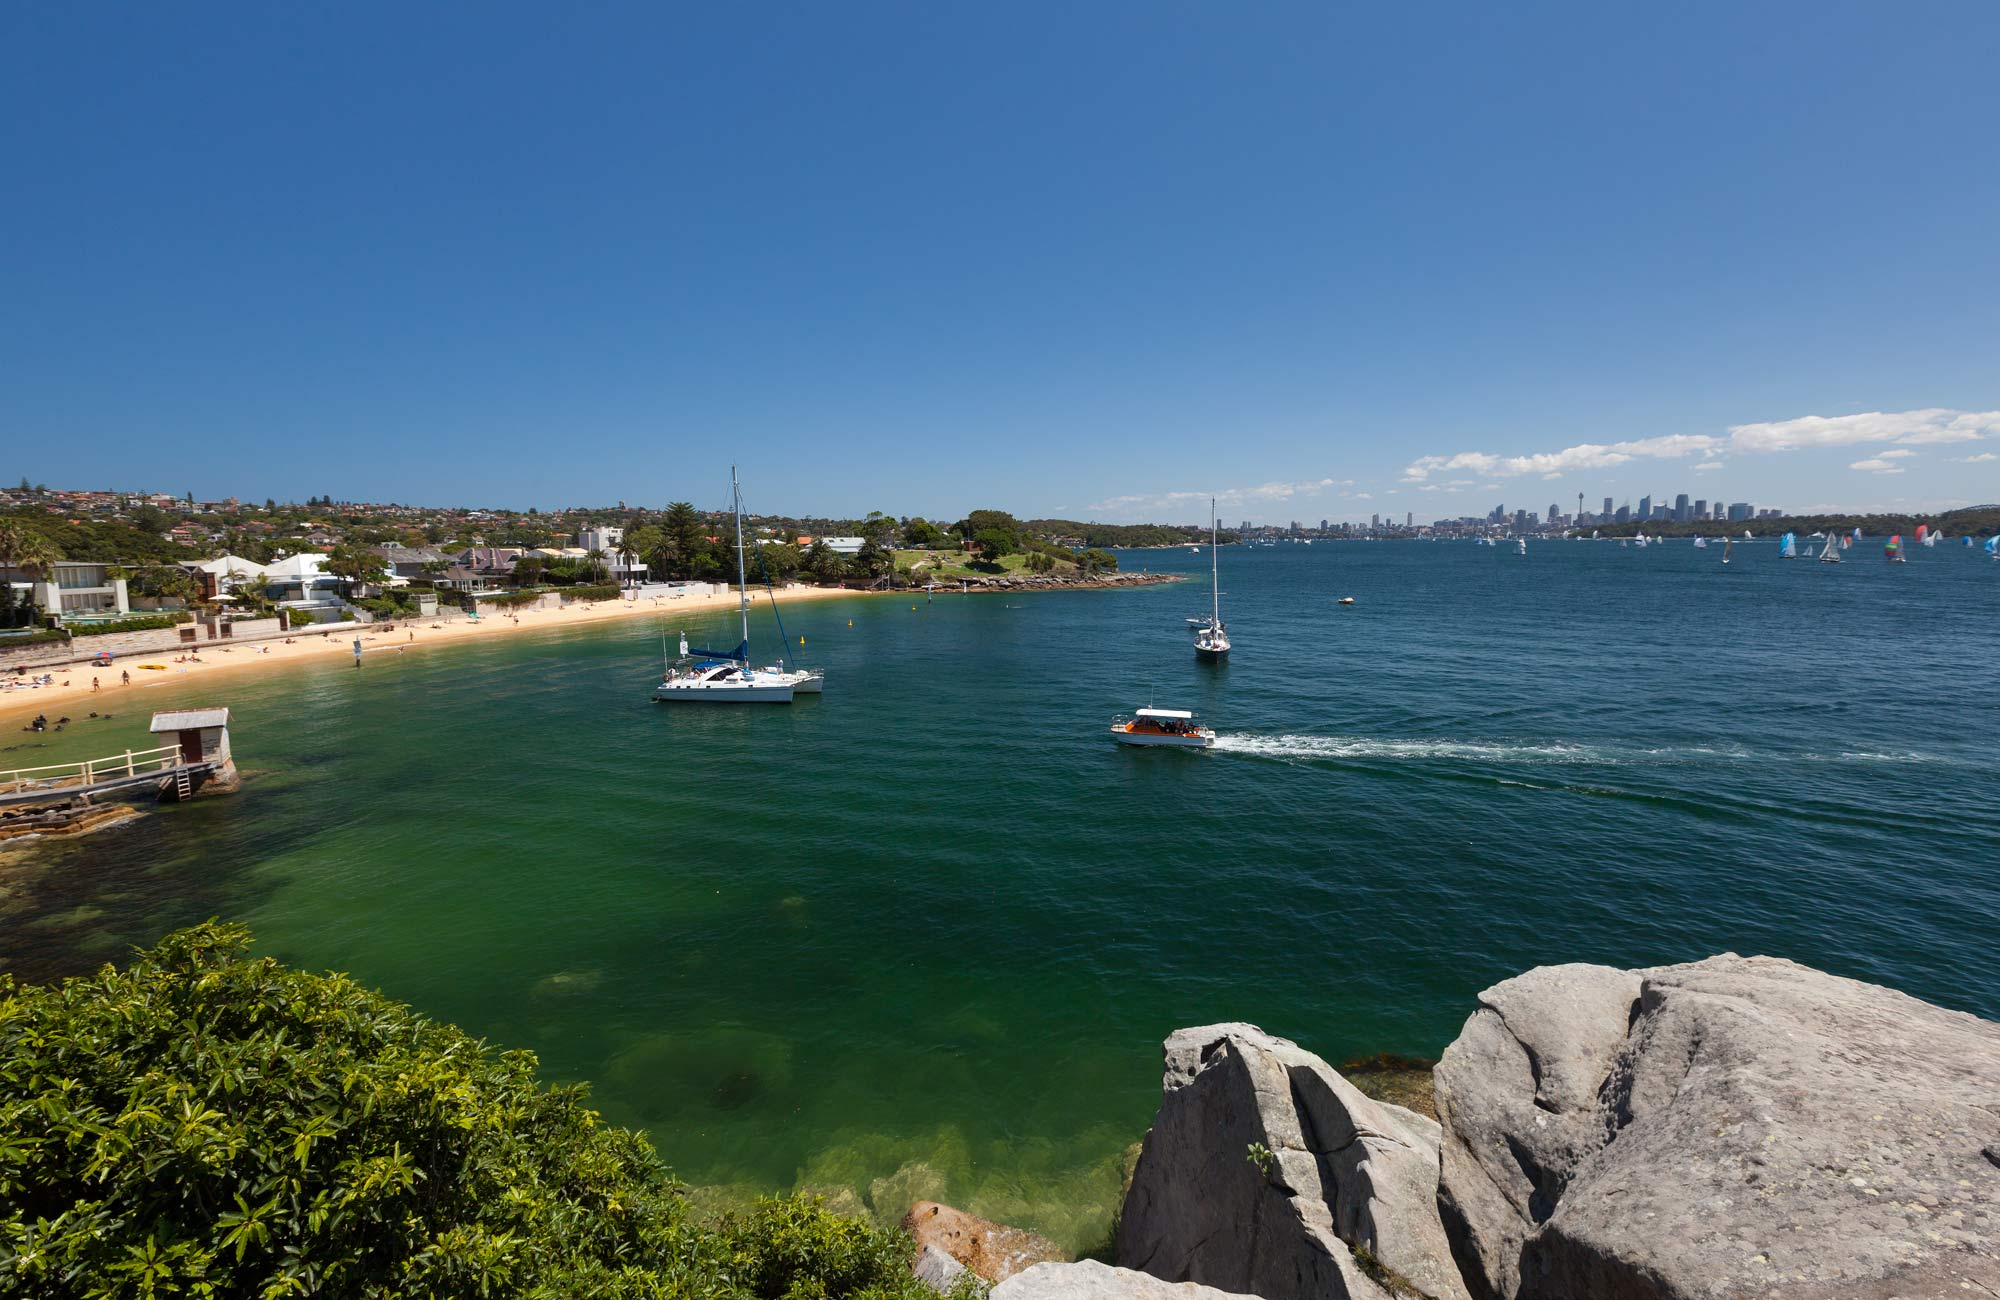 South Head Heritage Walk, Sydney Harbour National Park. Photo: David Finnegan